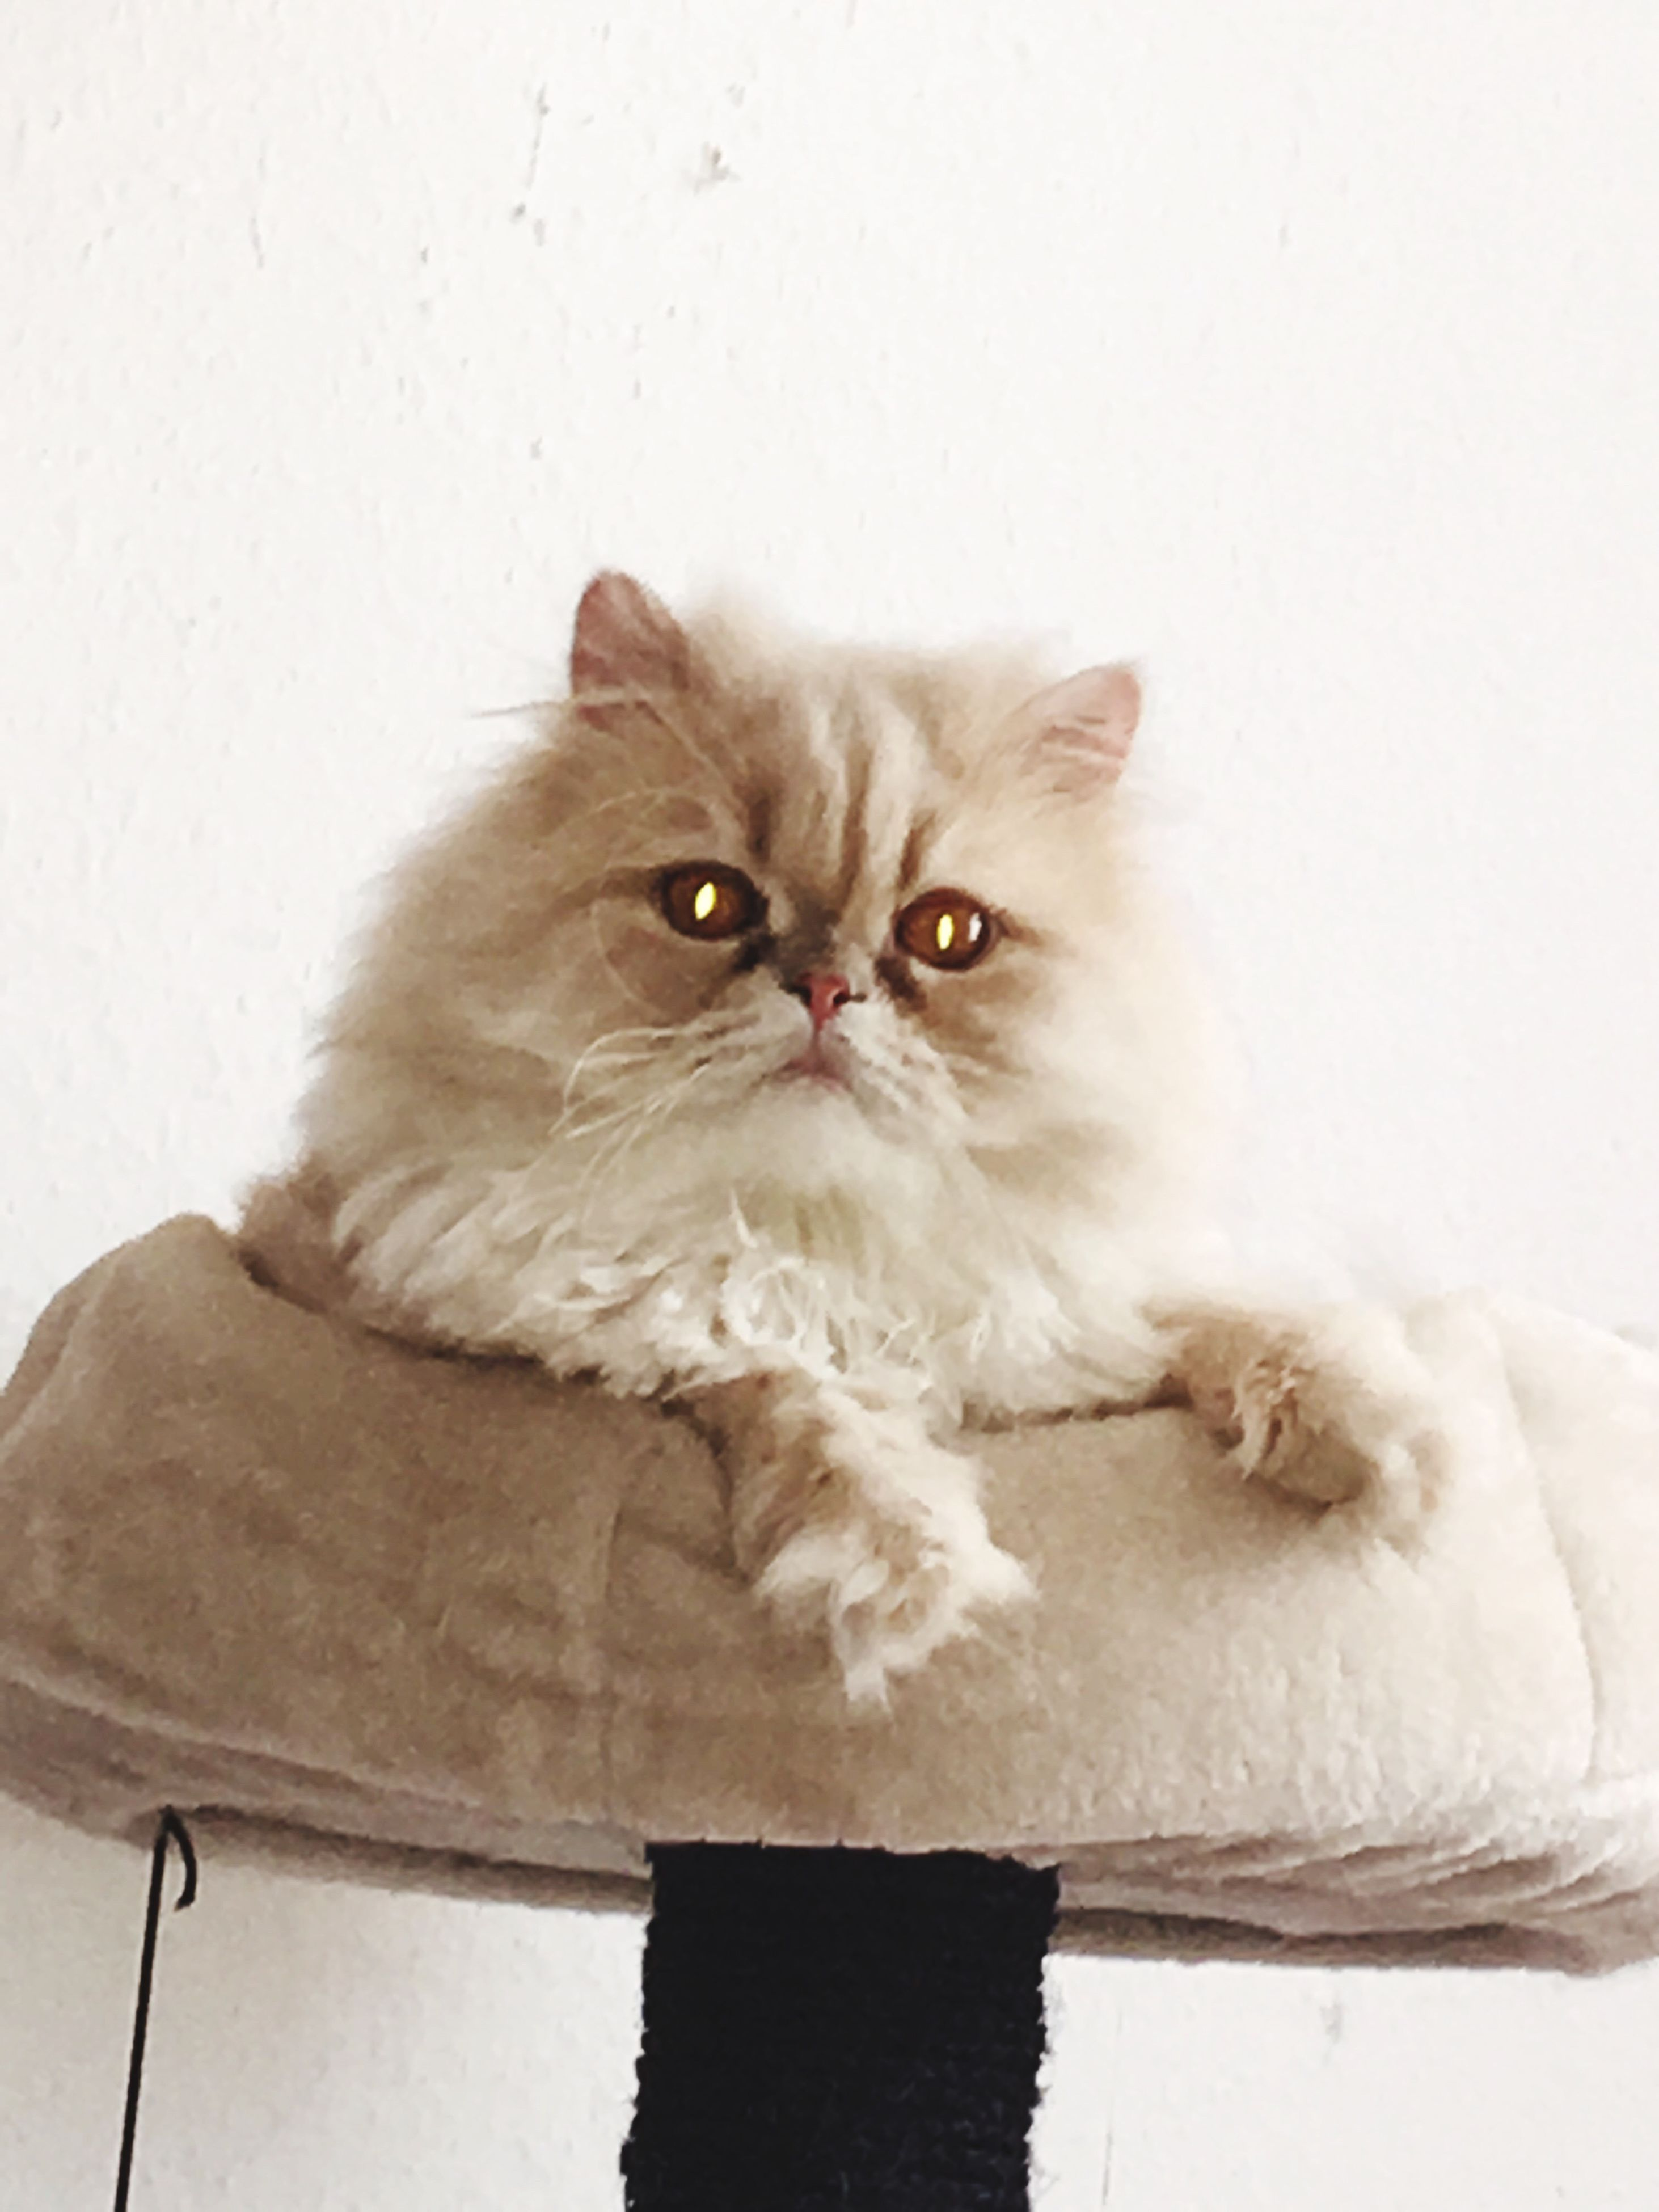 domestic cat, pets, feline, domestic animals, looking at camera, indoors, persian cat, mammal, animal themes, portrait, whisker, white background, one animal, no people, close-up, day